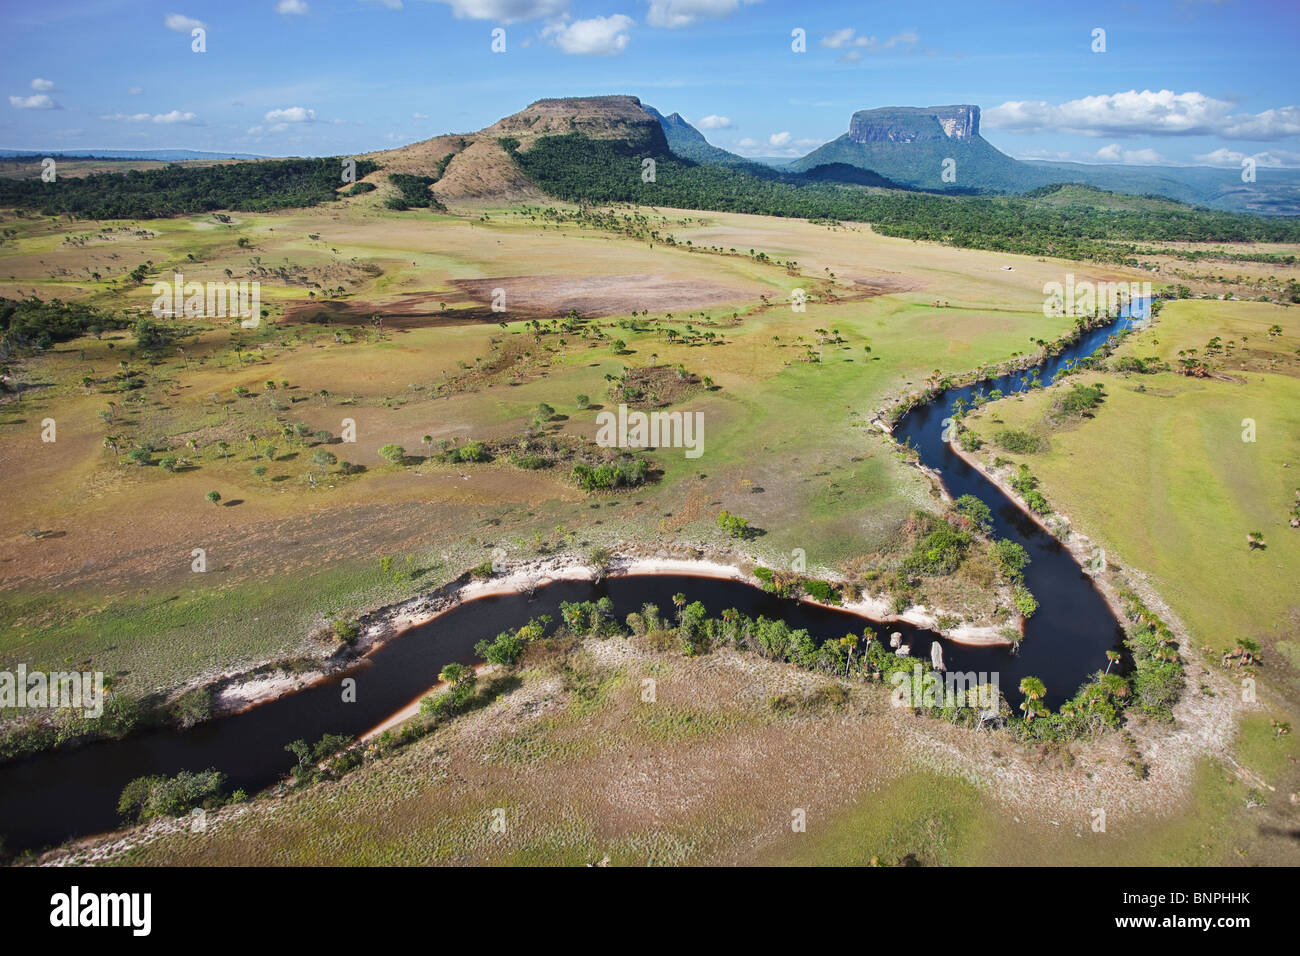 The Gran Sabana or Great Savanna lies on a plateau dotted with huge table-top mountains called Tepuis Venezuela - Stock Image